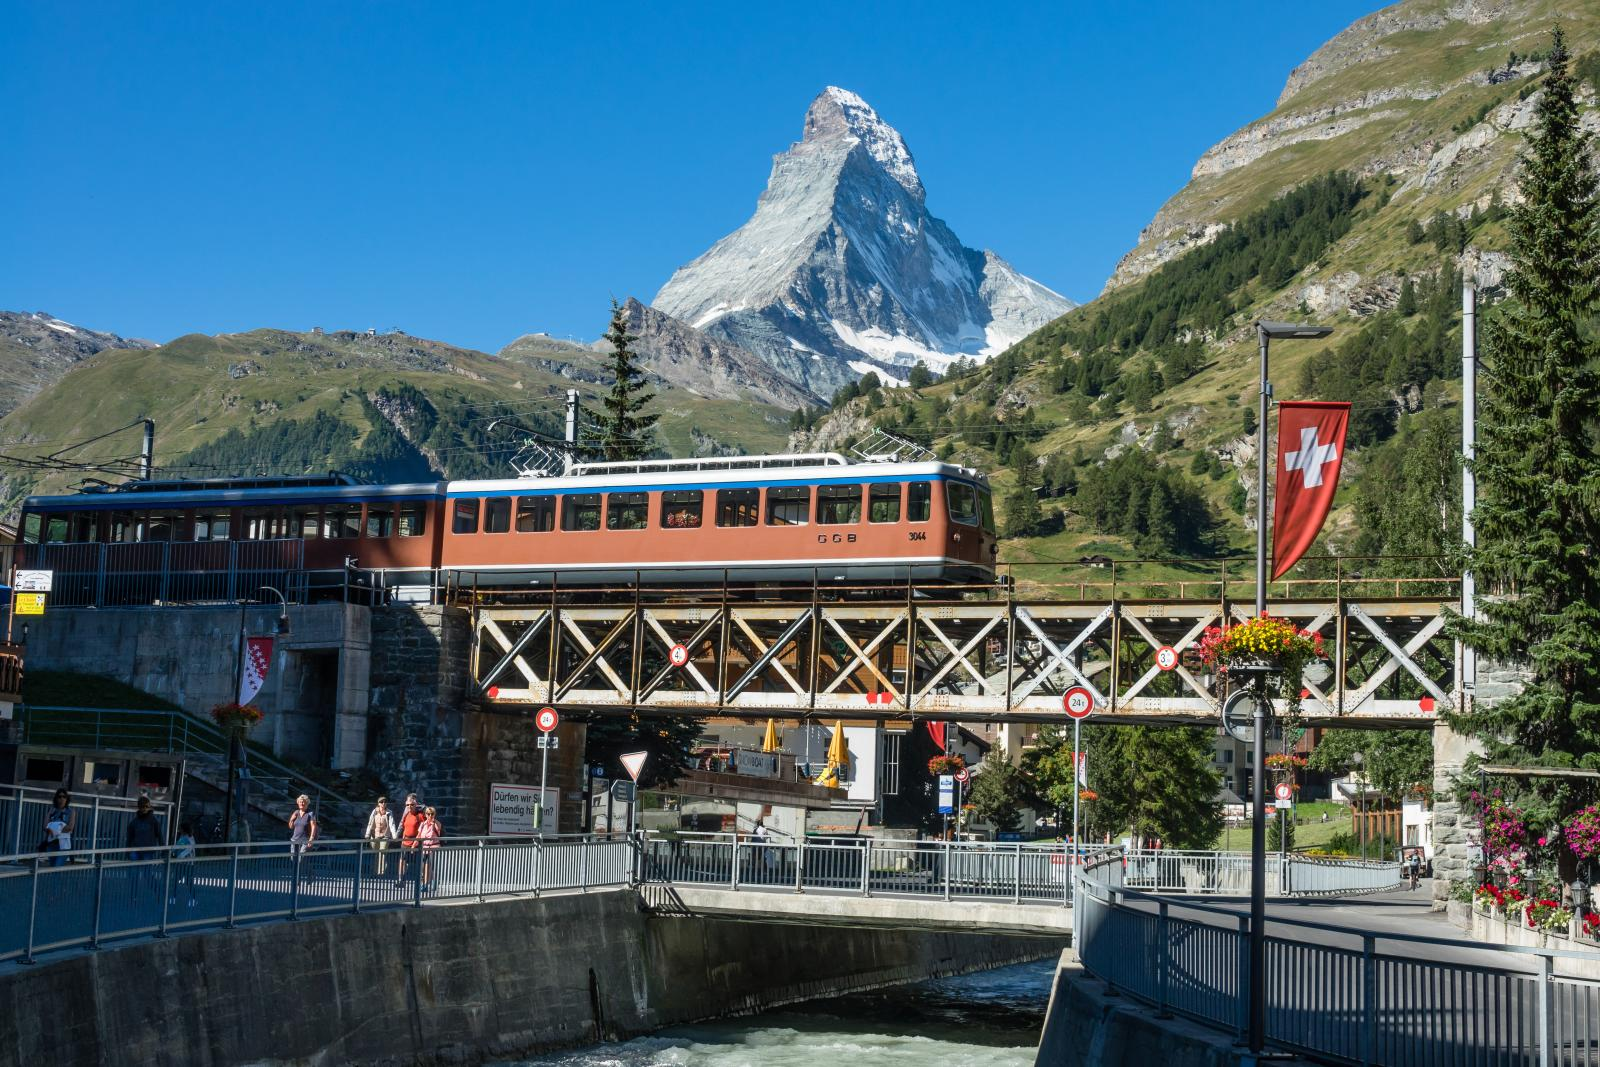 Swiss Train and Matterhorn